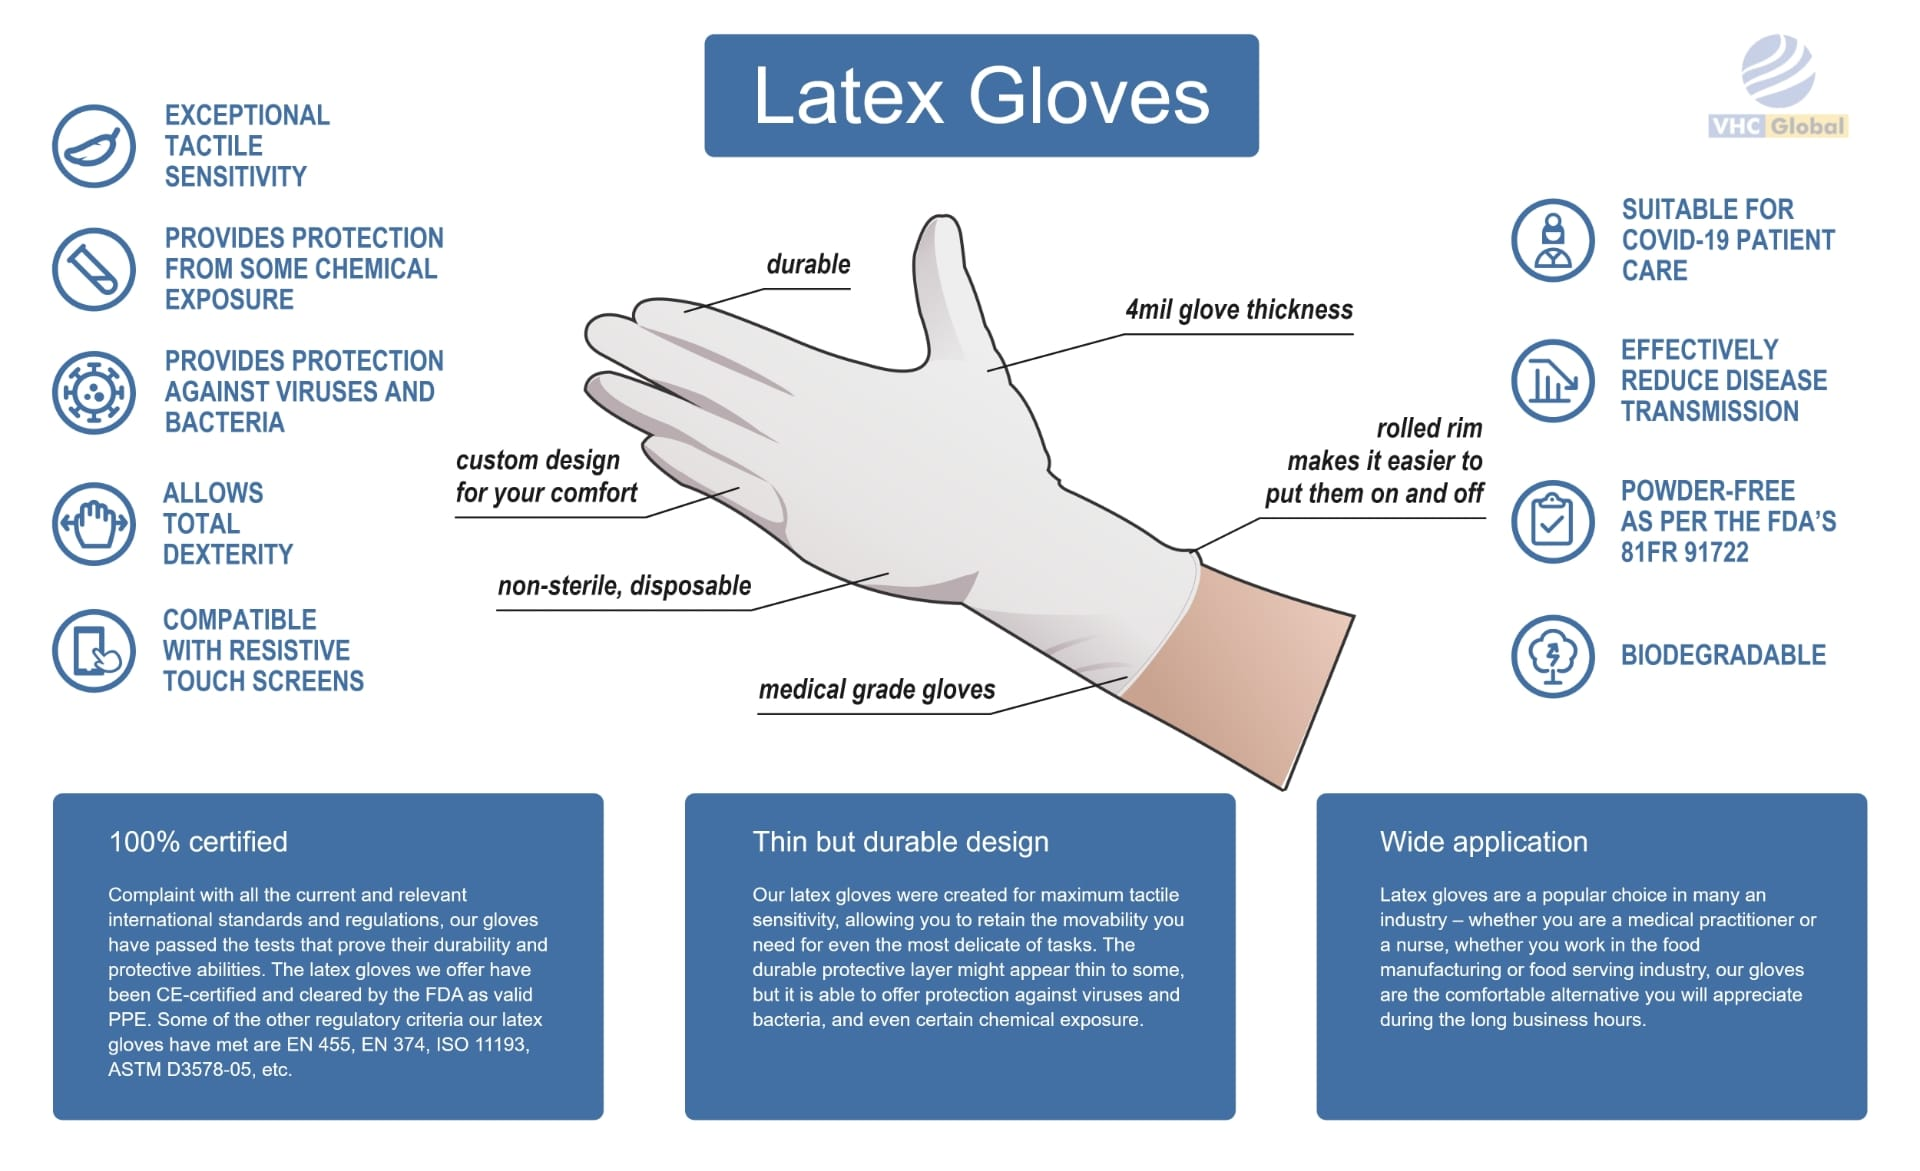 Latex gloves infographic. Everything you need to know about Latex Gloves. EXCEPTIONAL TACTILE SENSITIVITY, PROVIDES PROTECTION FROM SOME CHEMICAL EXPOSURE, PROVIDES PROTECTION AGAINST VIRUSES AND BACTERIA, ALLOWS TOTAL DEXTERITY, COMPATIBLE WITH RESISTIVE TOUCH SCREENS, durable, 4mil glove thickness, rolled rim makes it easier to put them on and off, non-sterile, disposable, 100% certified, SUITABLE FOR COVID-19 PATIENT CARE, EFFECTIVELY REDUCE DISEASE TRANSMISSION, POWDER-FREE AS PER THE FDA'S 81FR 91722, BIODEGRADABLE